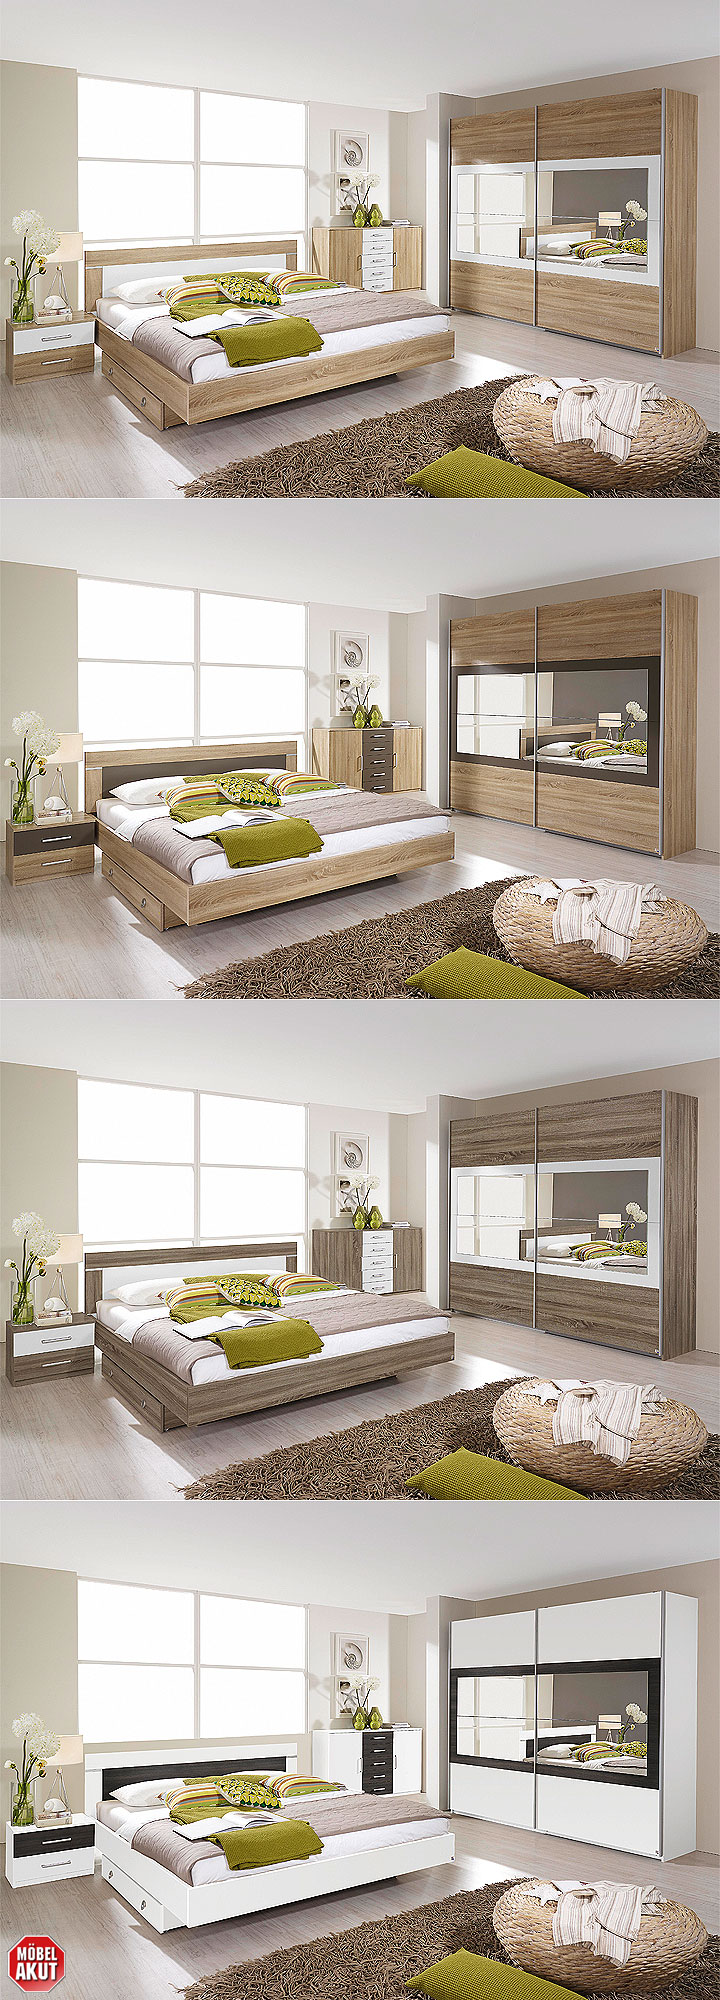 kommode venlo sonoma eiche s gerau lavagrau. Black Bedroom Furniture Sets. Home Design Ideas